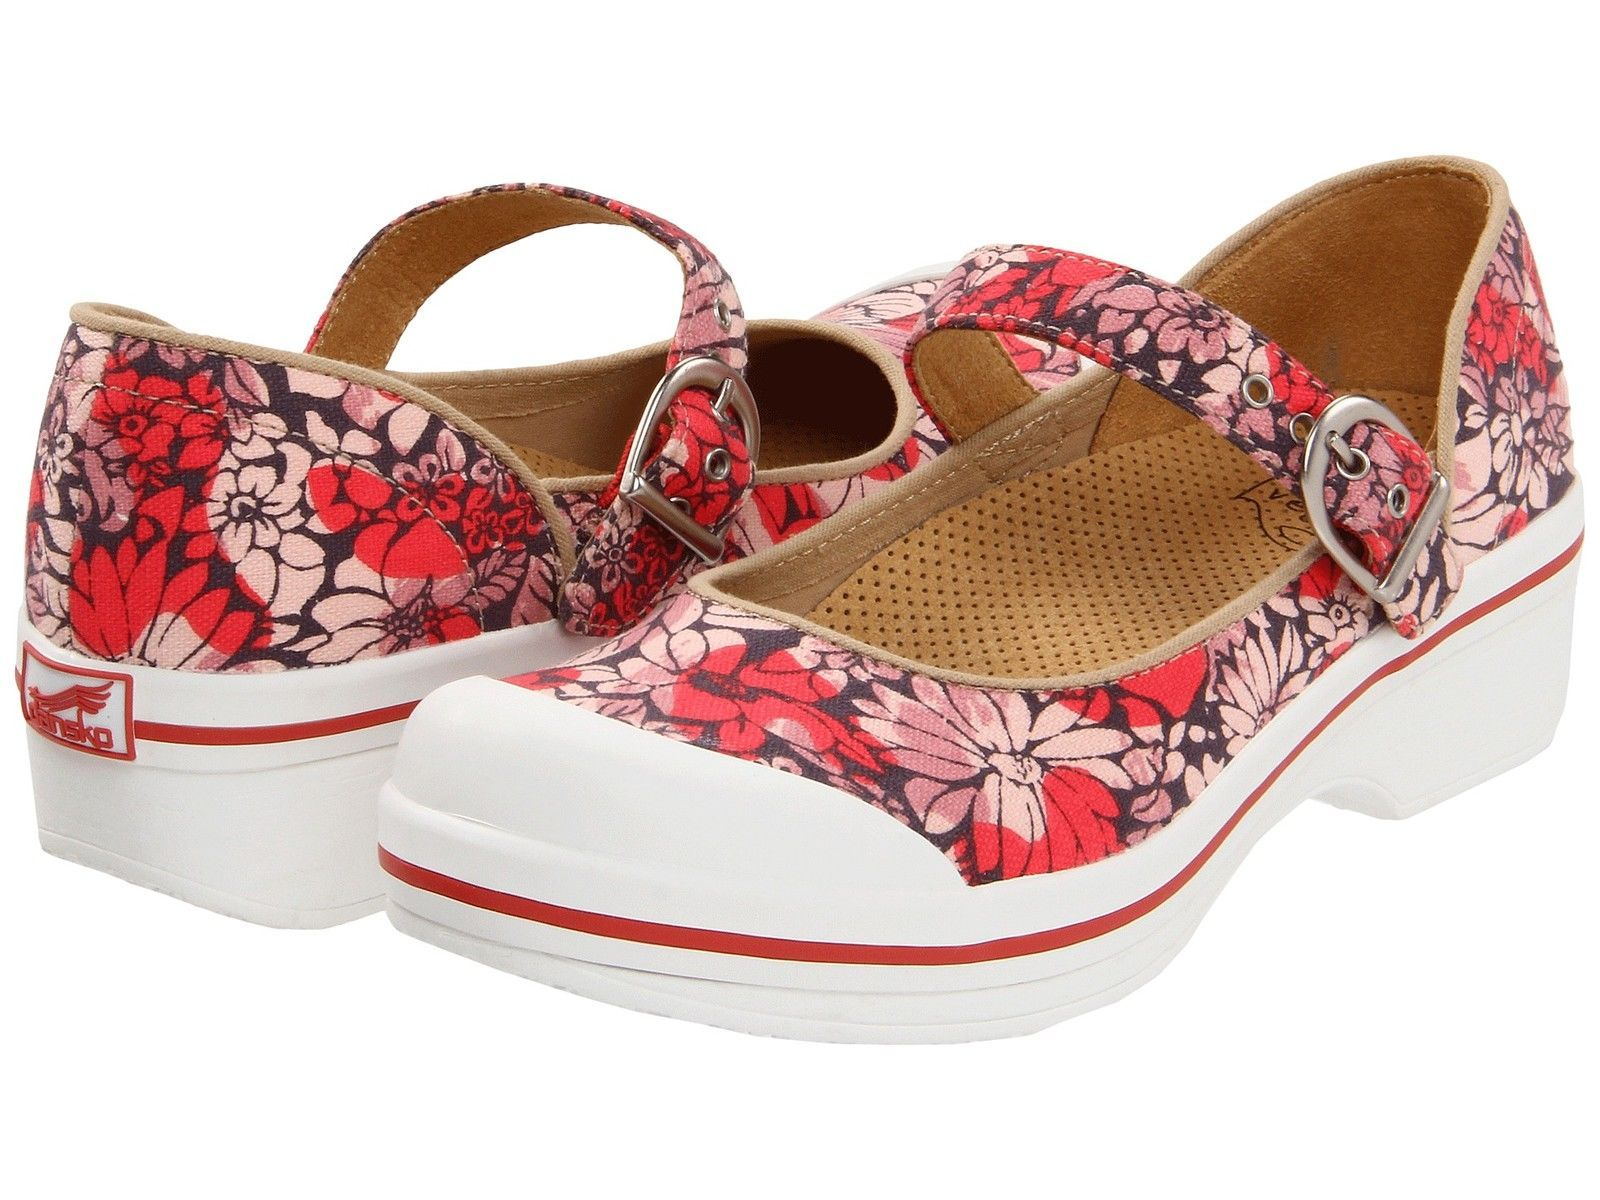 DANSKO VALERIE CANVAS RED HAWAII EU SIZE 39